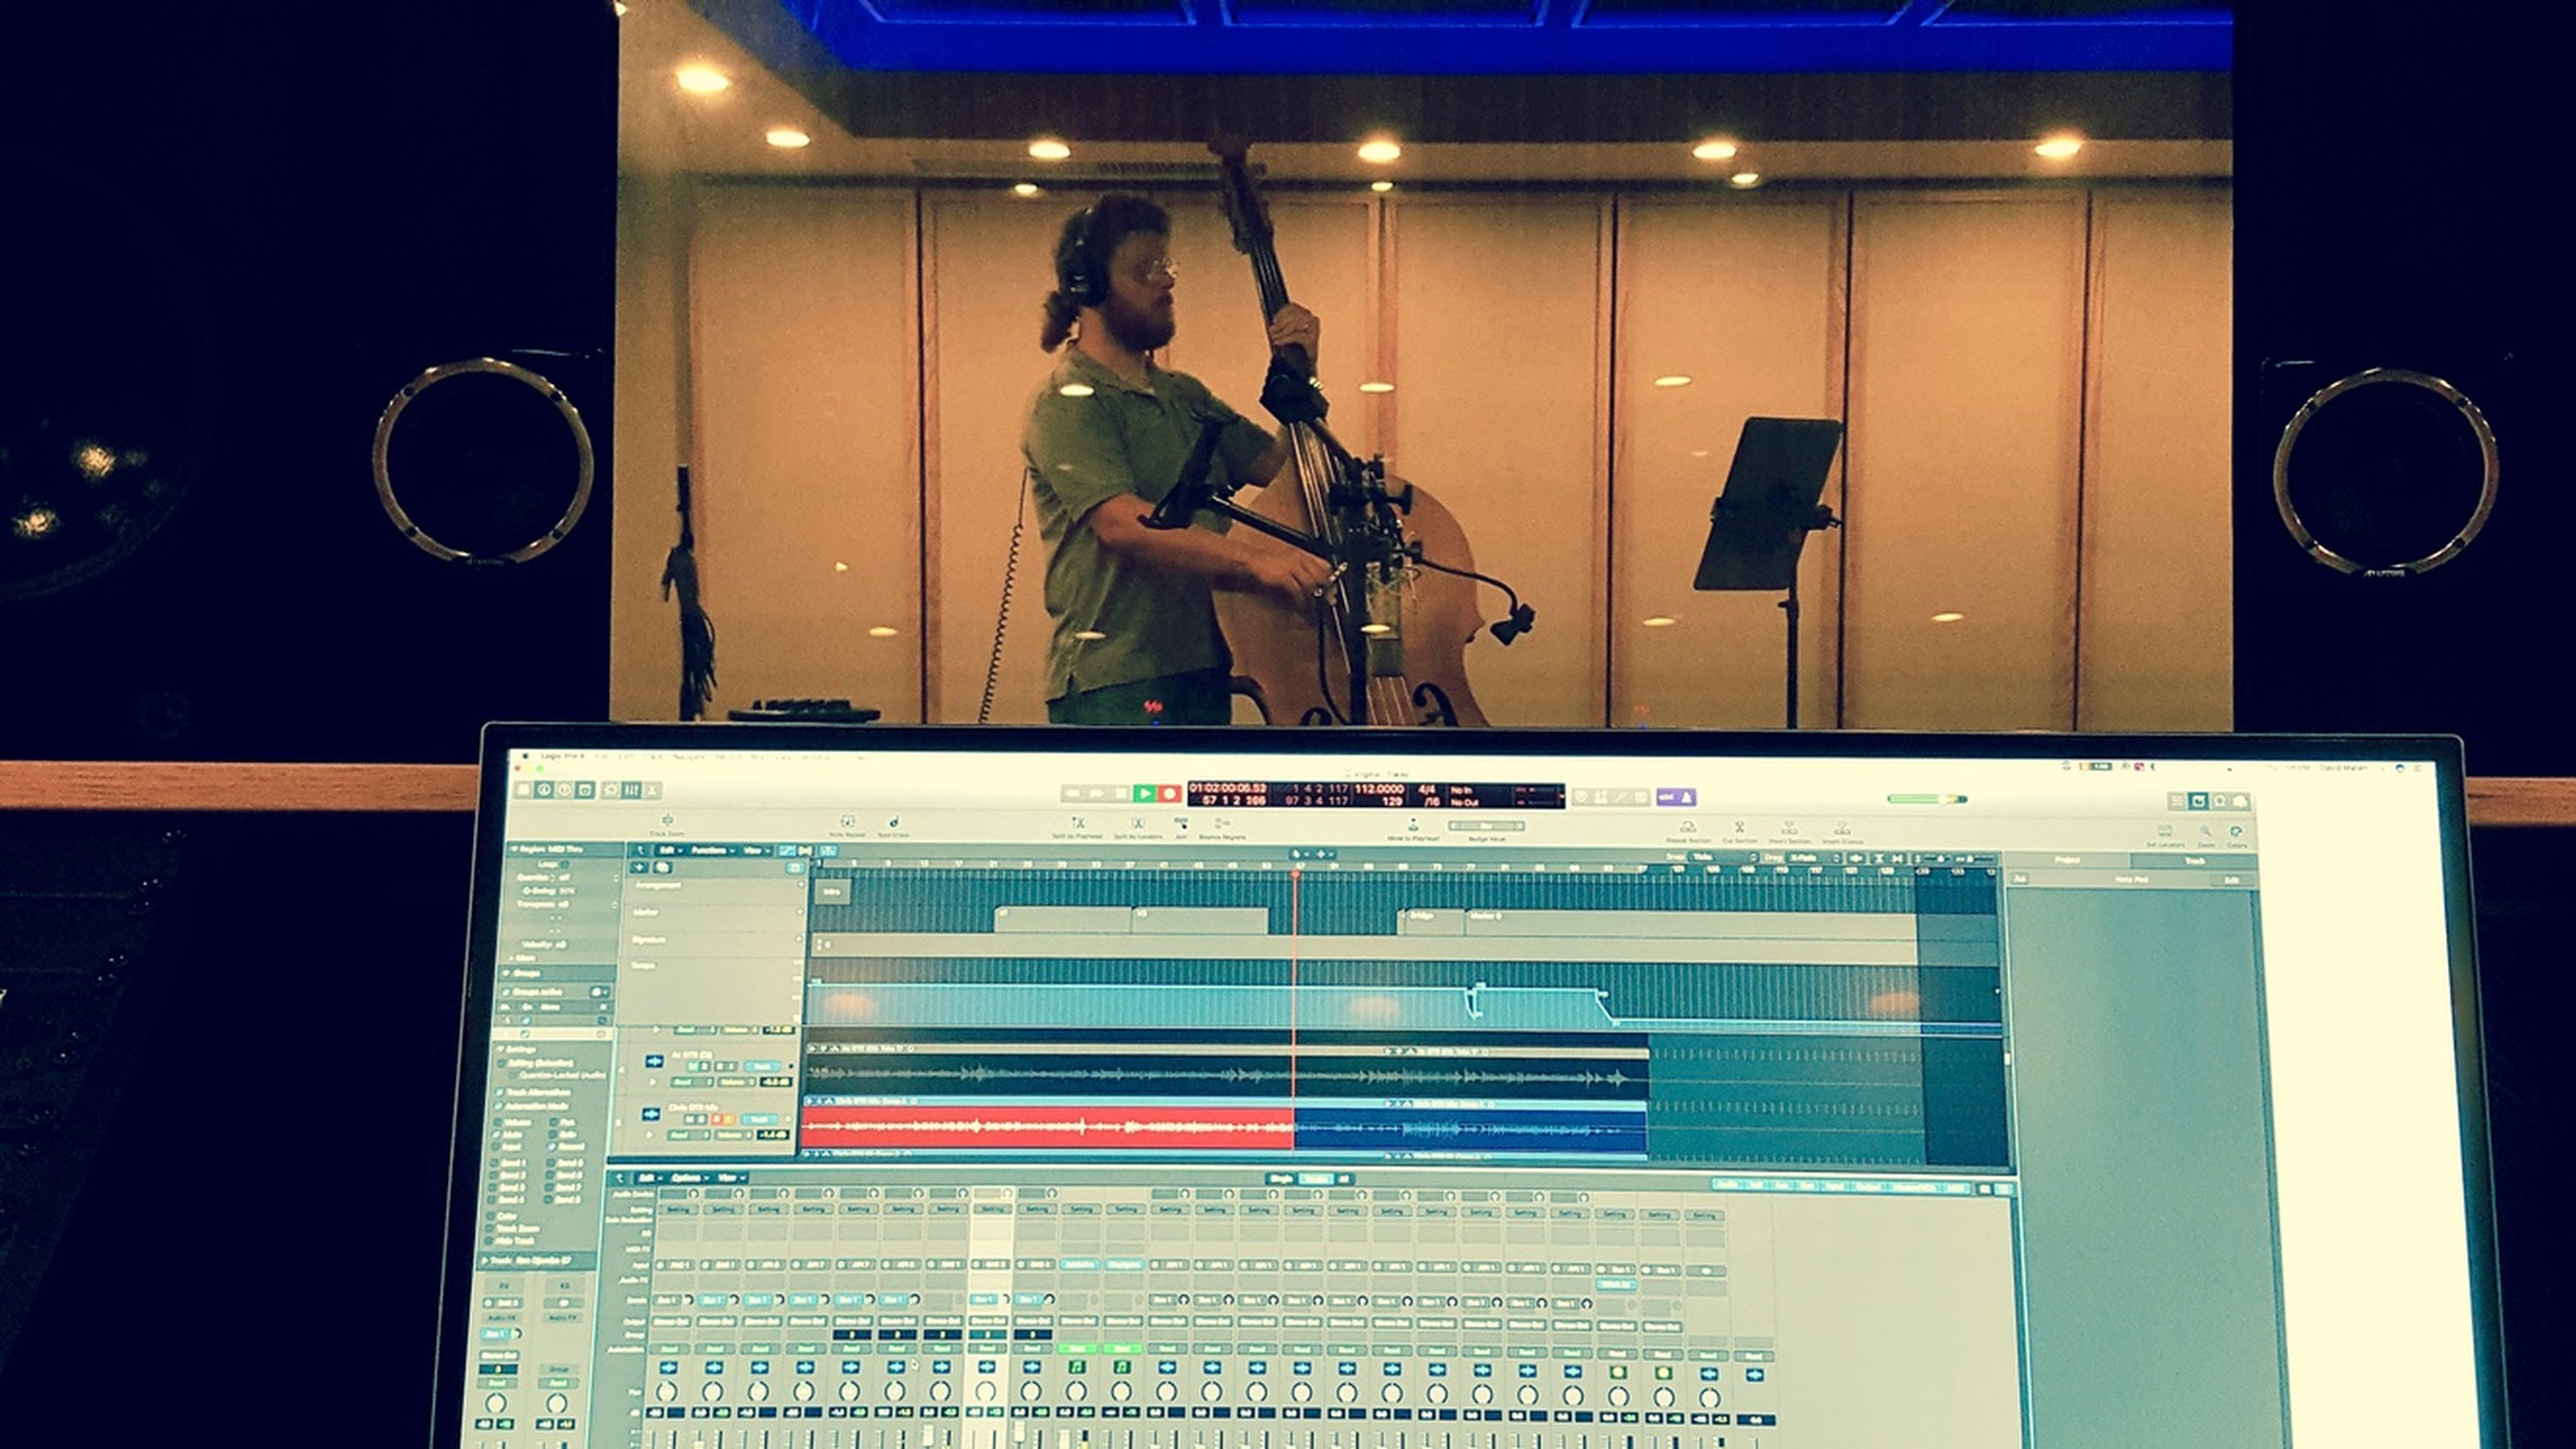 Niels Jonker on Bass - Music Recording Studio VA by Innovation Station Music